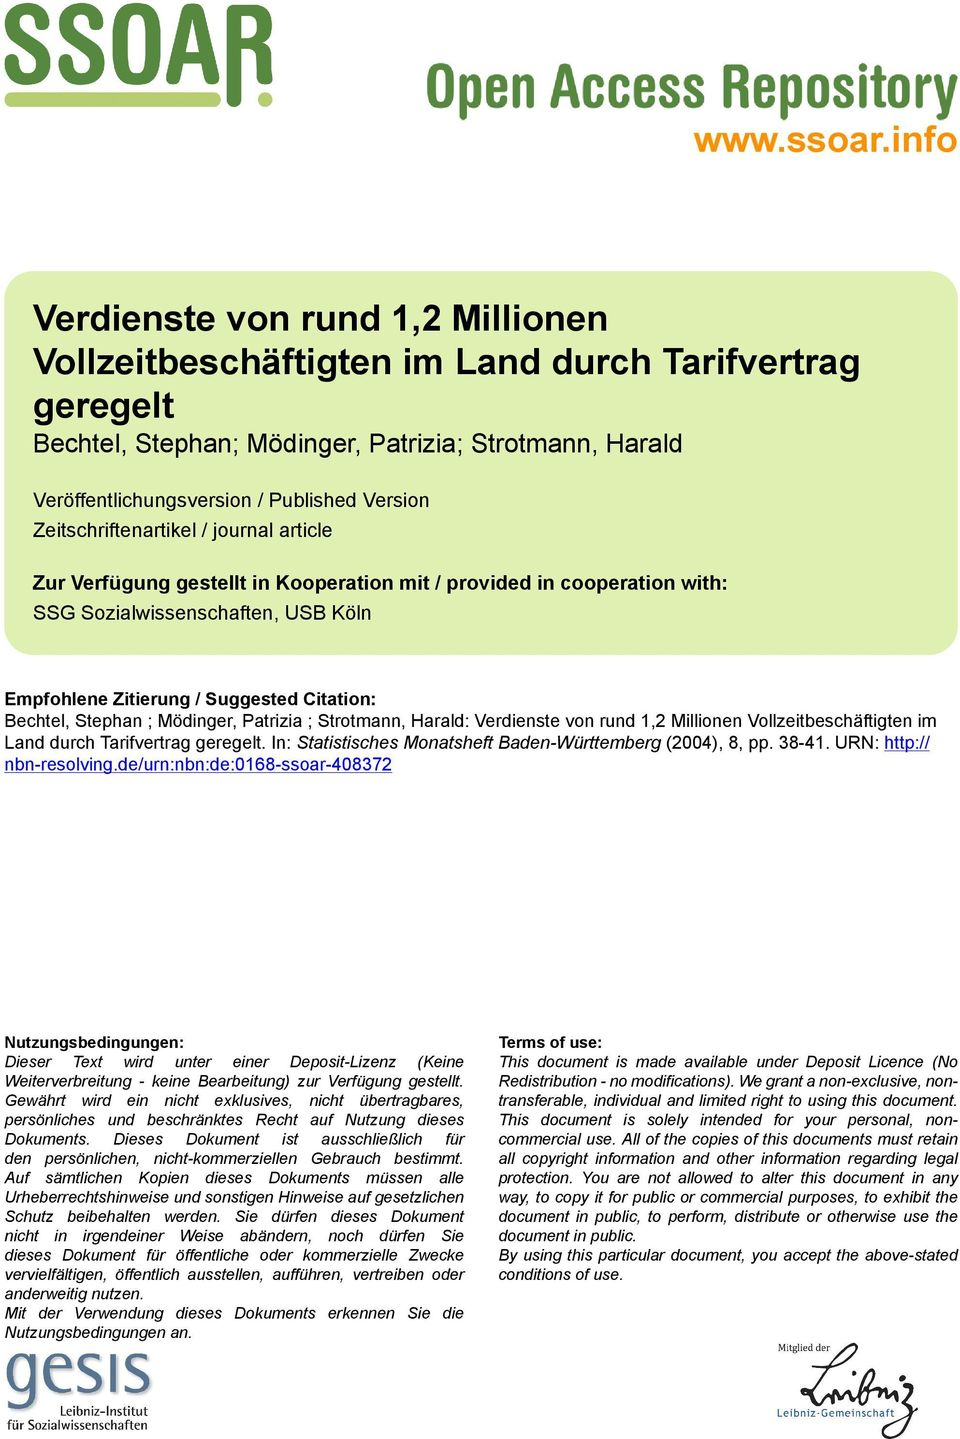 Zeitschriftenartikel / journal article Zur Verfügung gestellt in Kooperation mit / provided in cooperation with: SSG Sozialwissenschaften, USB Köln Empfohlene Zitierung / Suggested Citation: Bechtel,